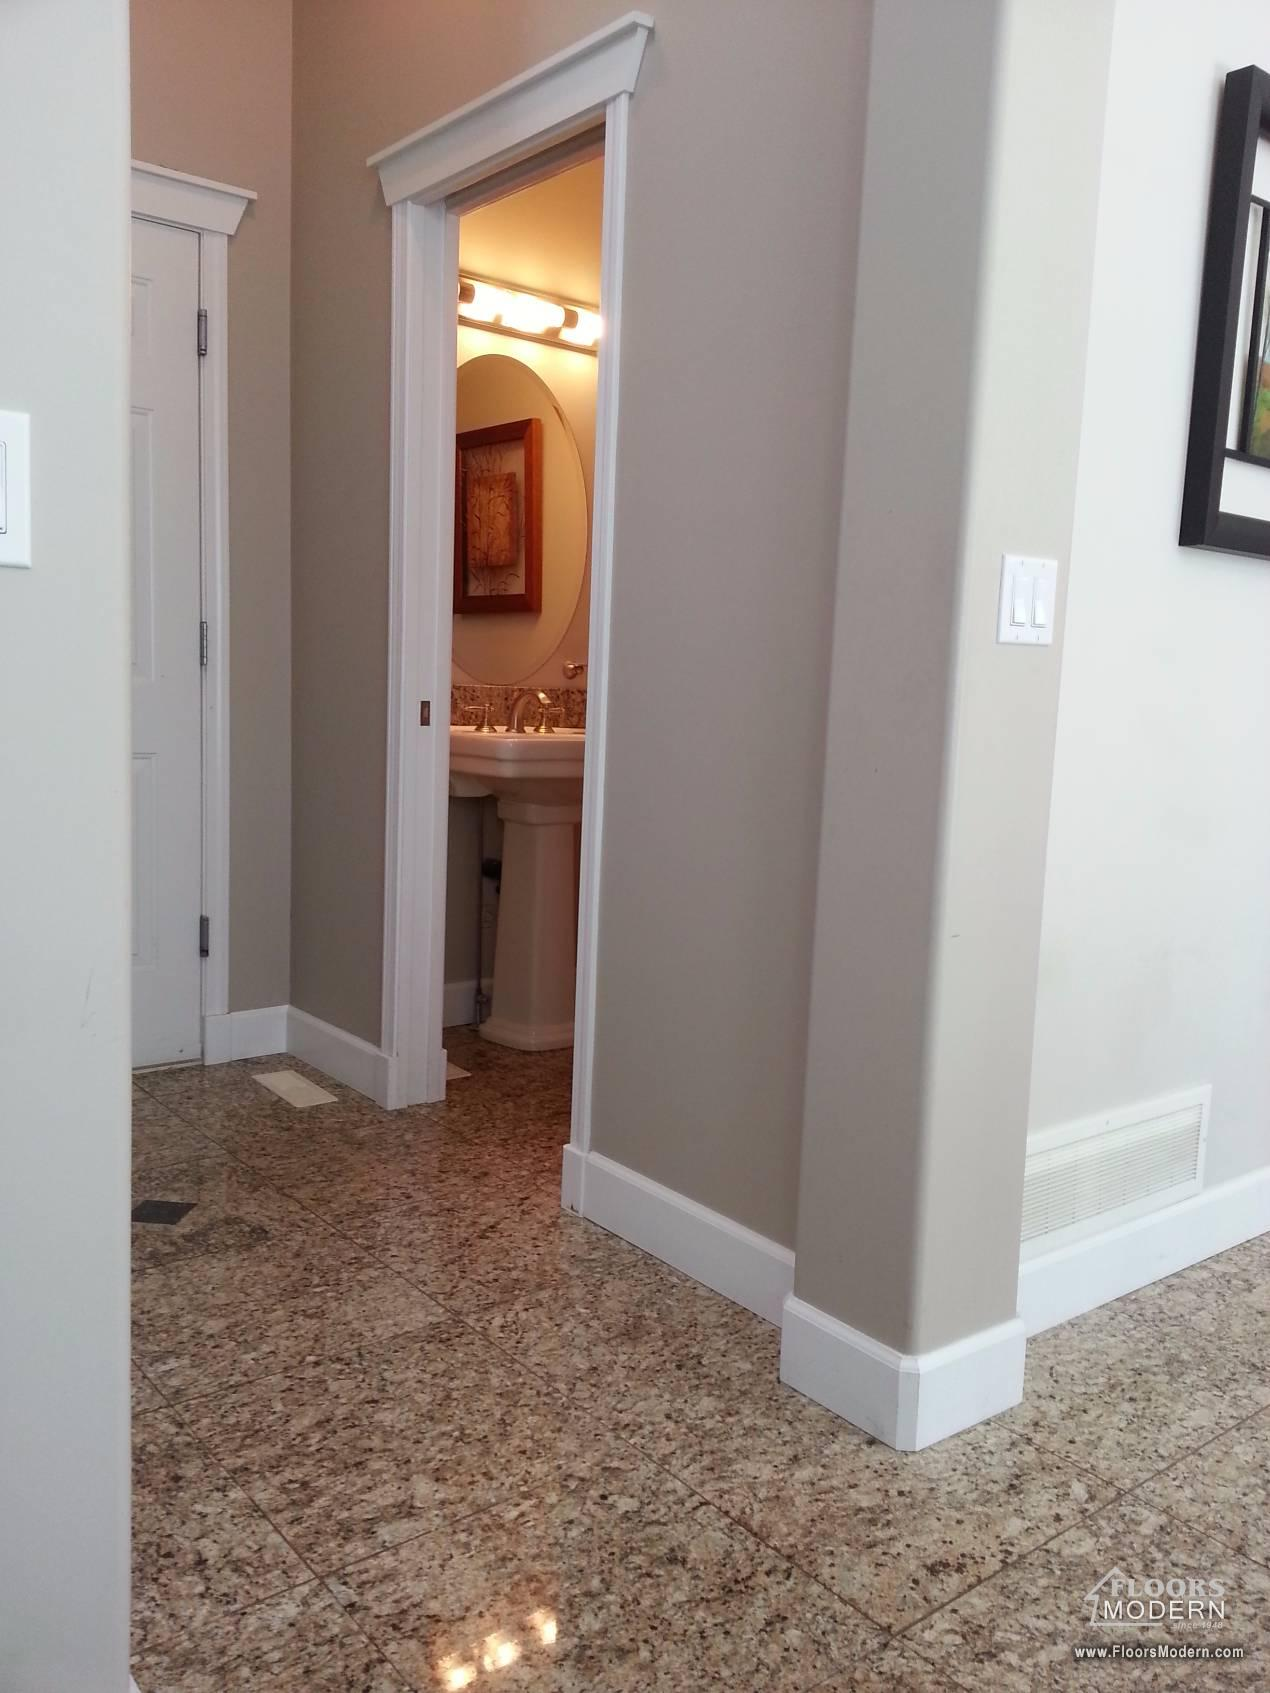 flooring installations, floor renovation and tiling projects